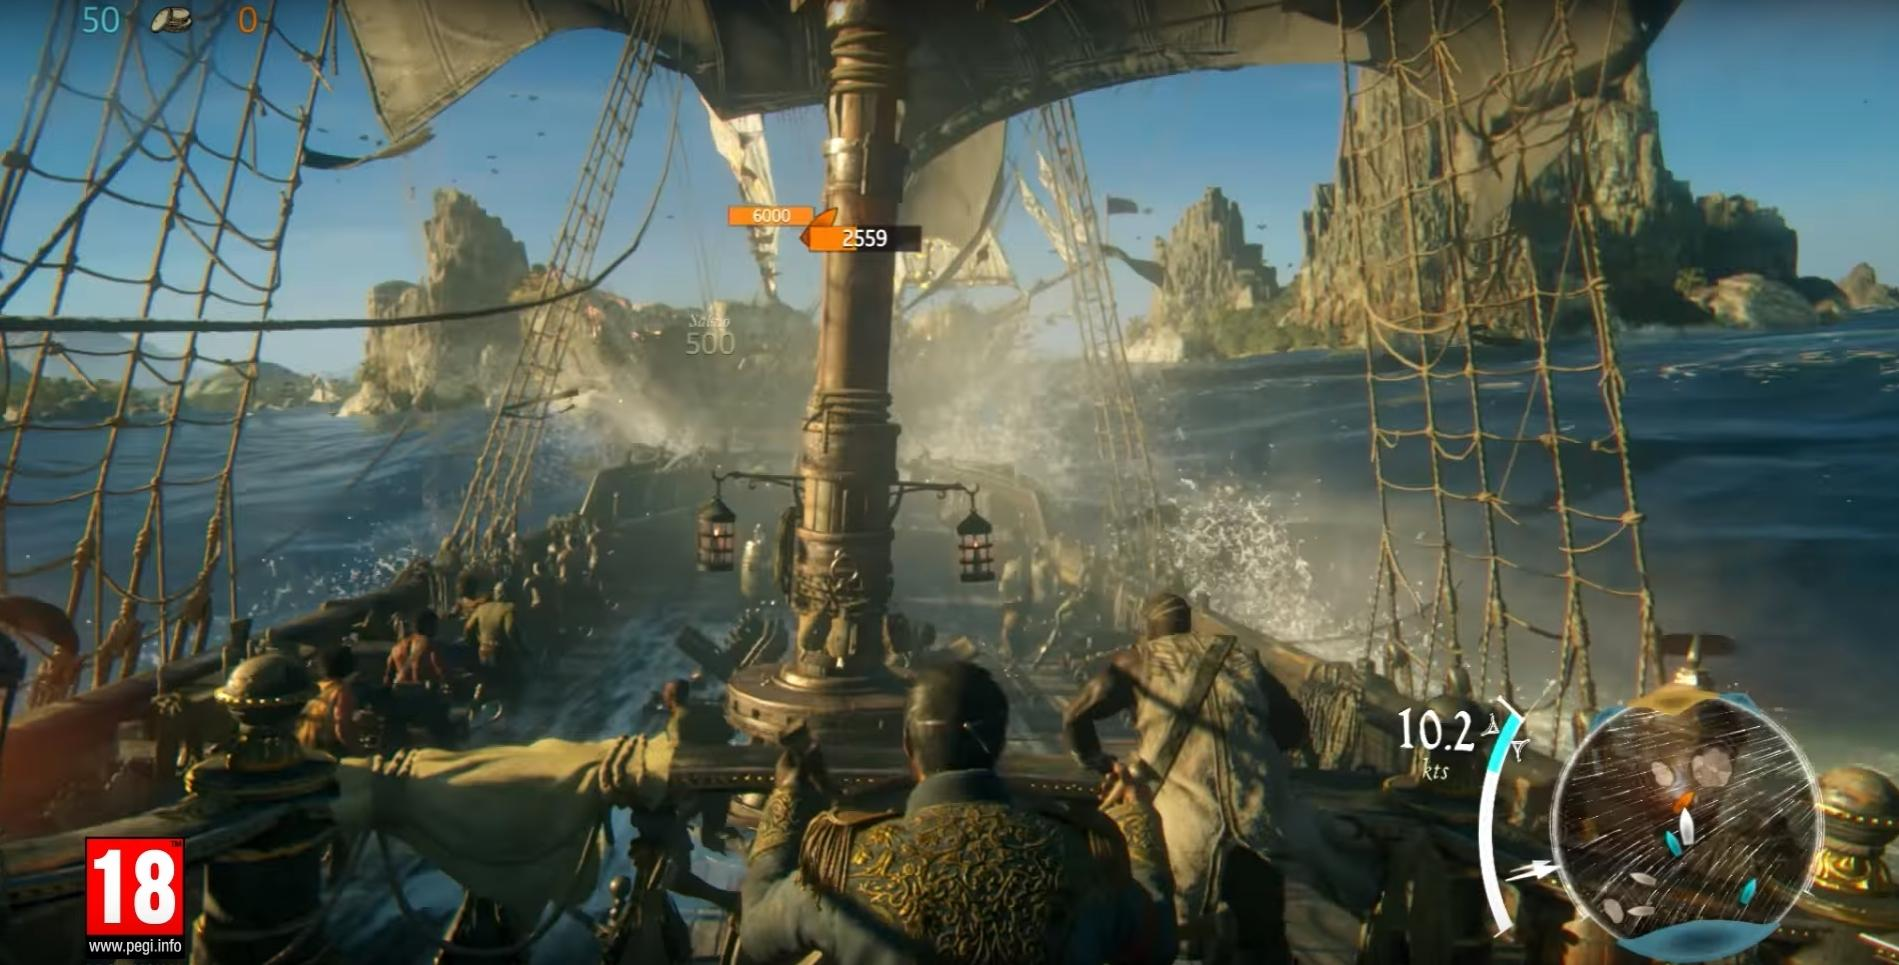 Ubisoft new IP is called Skull and Bones at this years E3